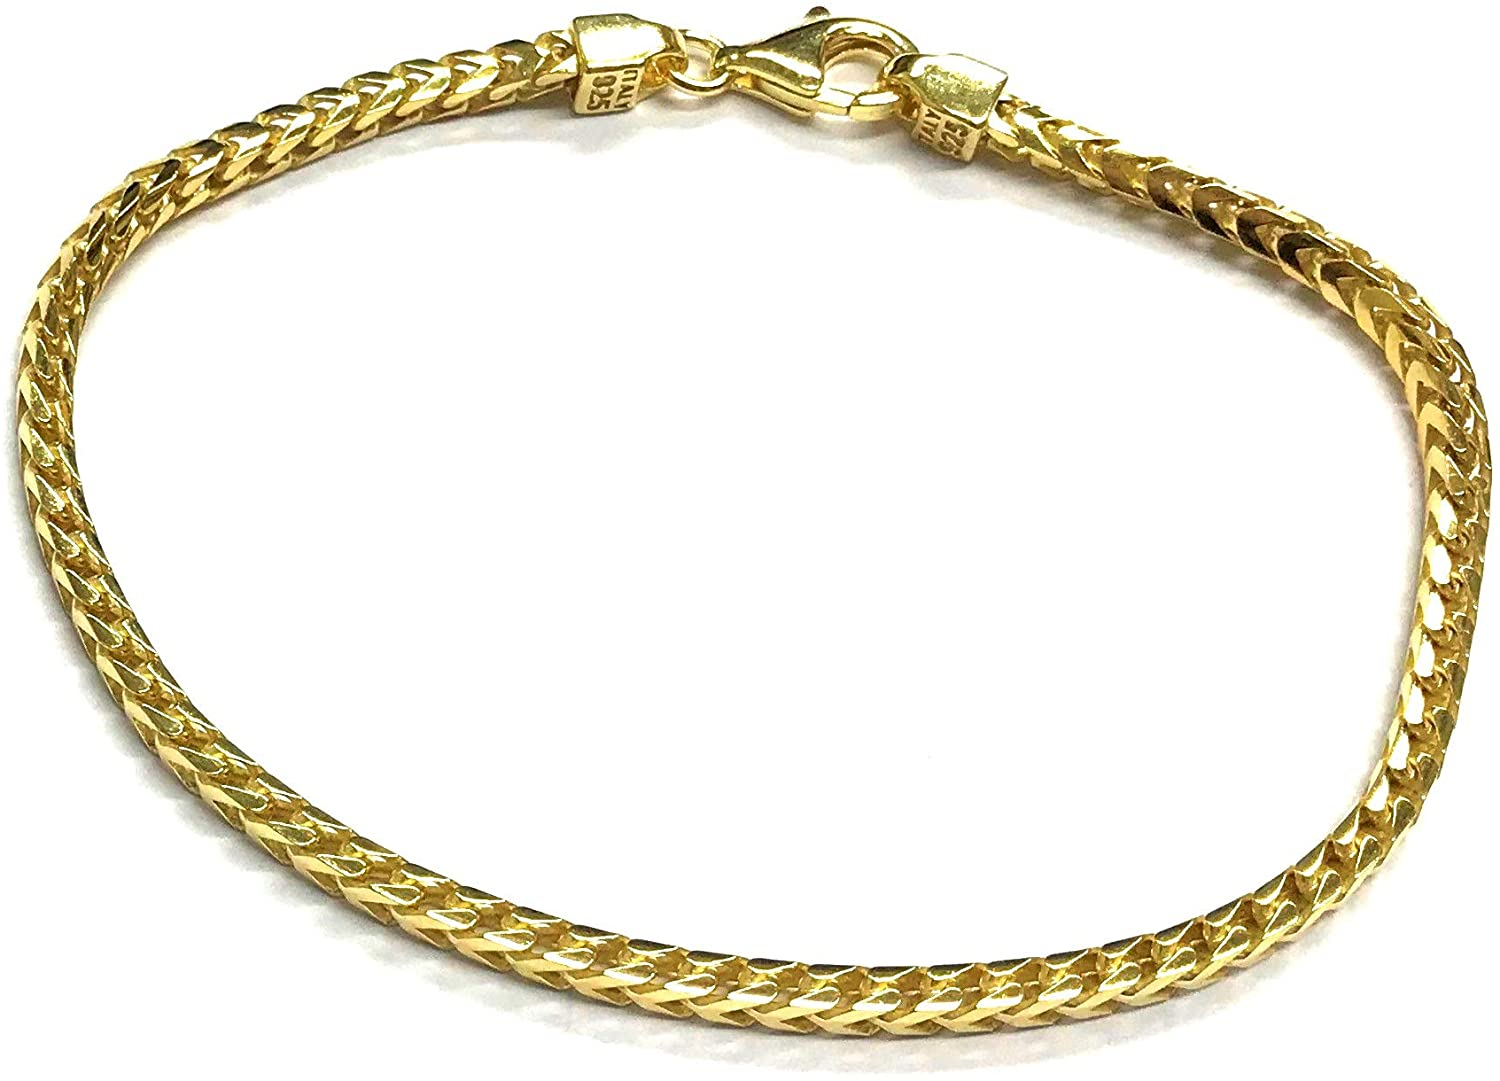 Sterling Silver Mens Solid Franco Square Box Link Chain Necklace/Bracelet - 1.8MM-4.7MM - Yellow or Rhodium